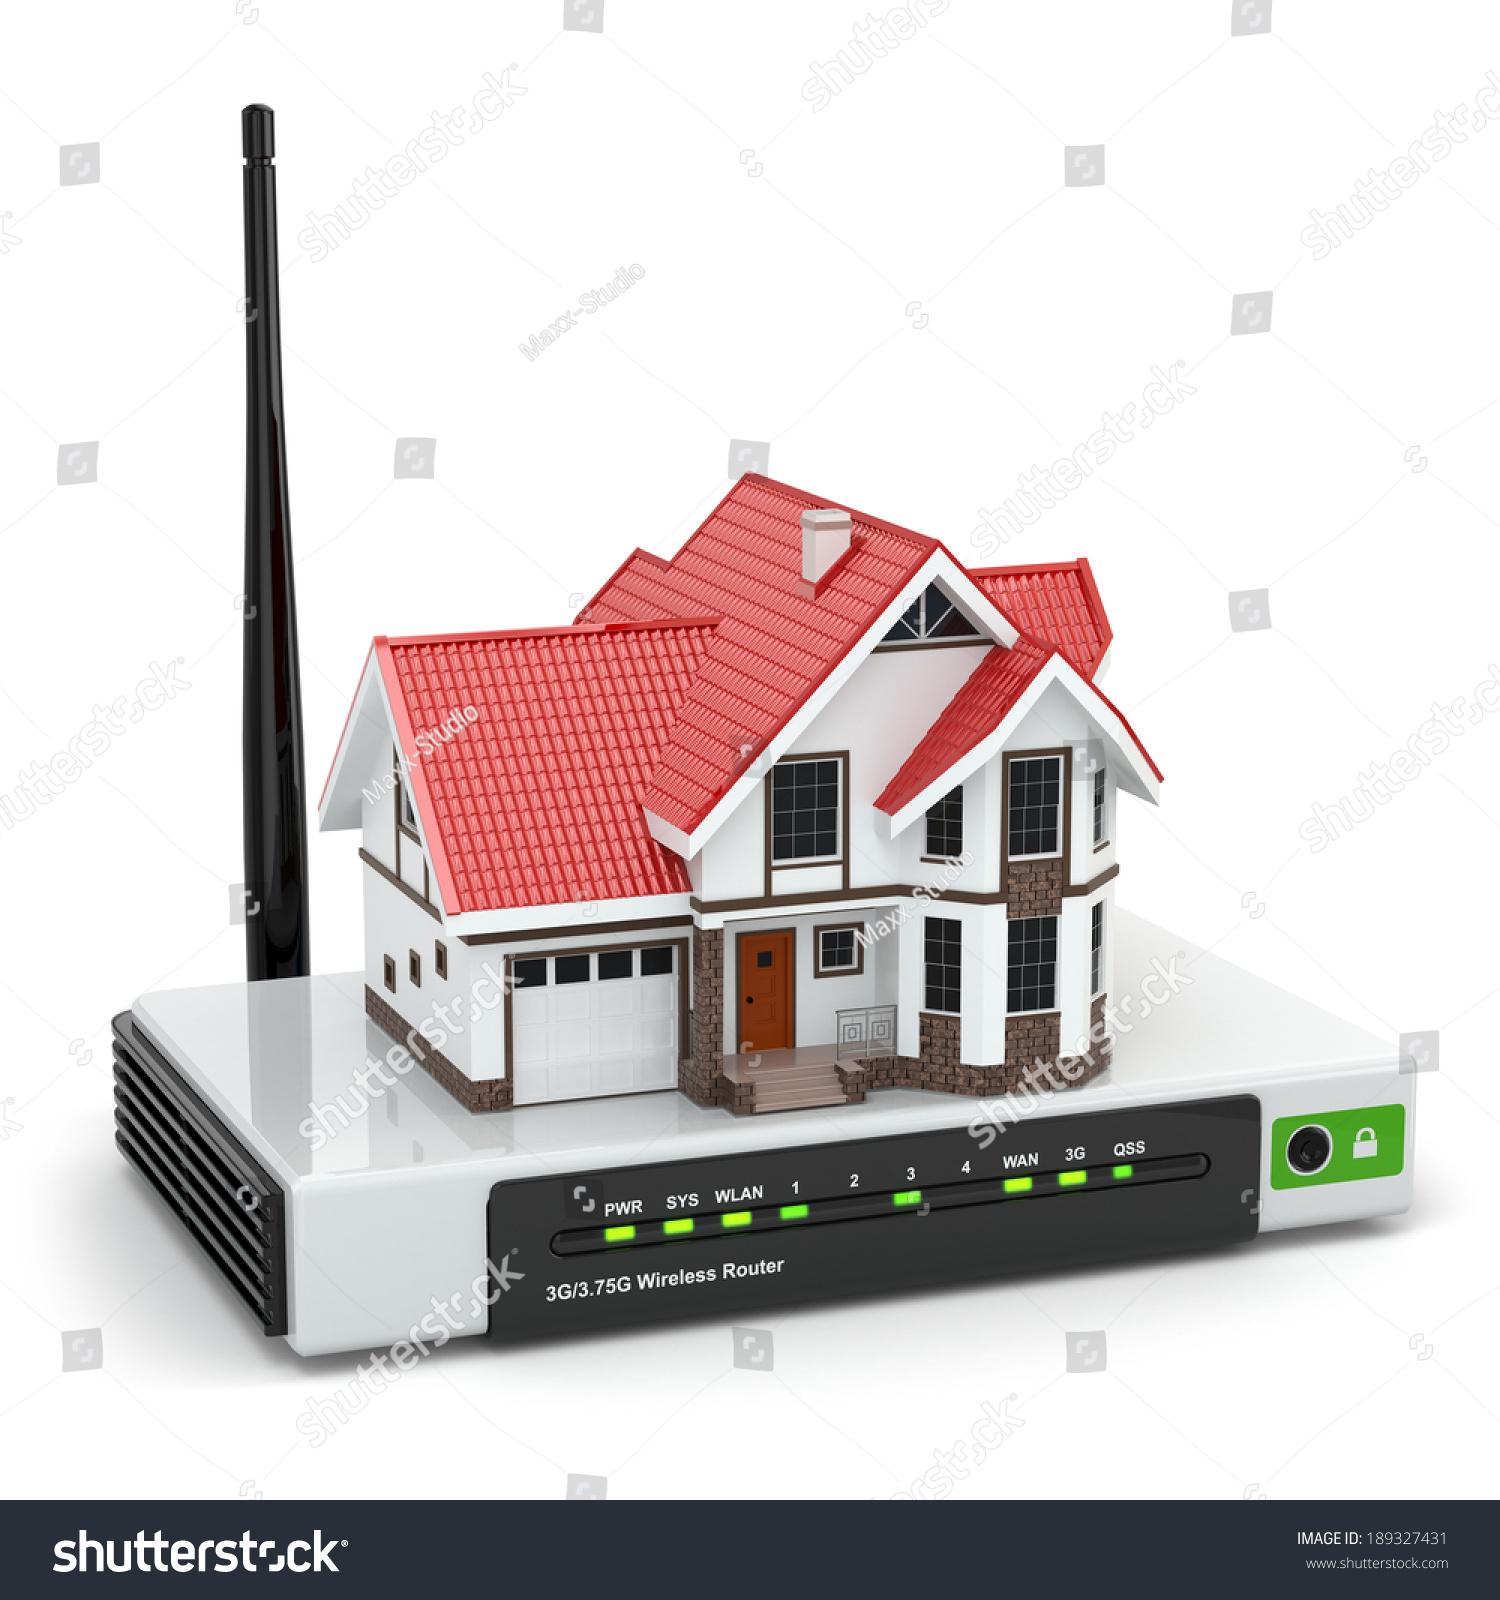 Building Diagram For Wireless Routers Royalty Free Stock Illustration Of Home Network Concept House On Wi Fi Router Isolated White 3d